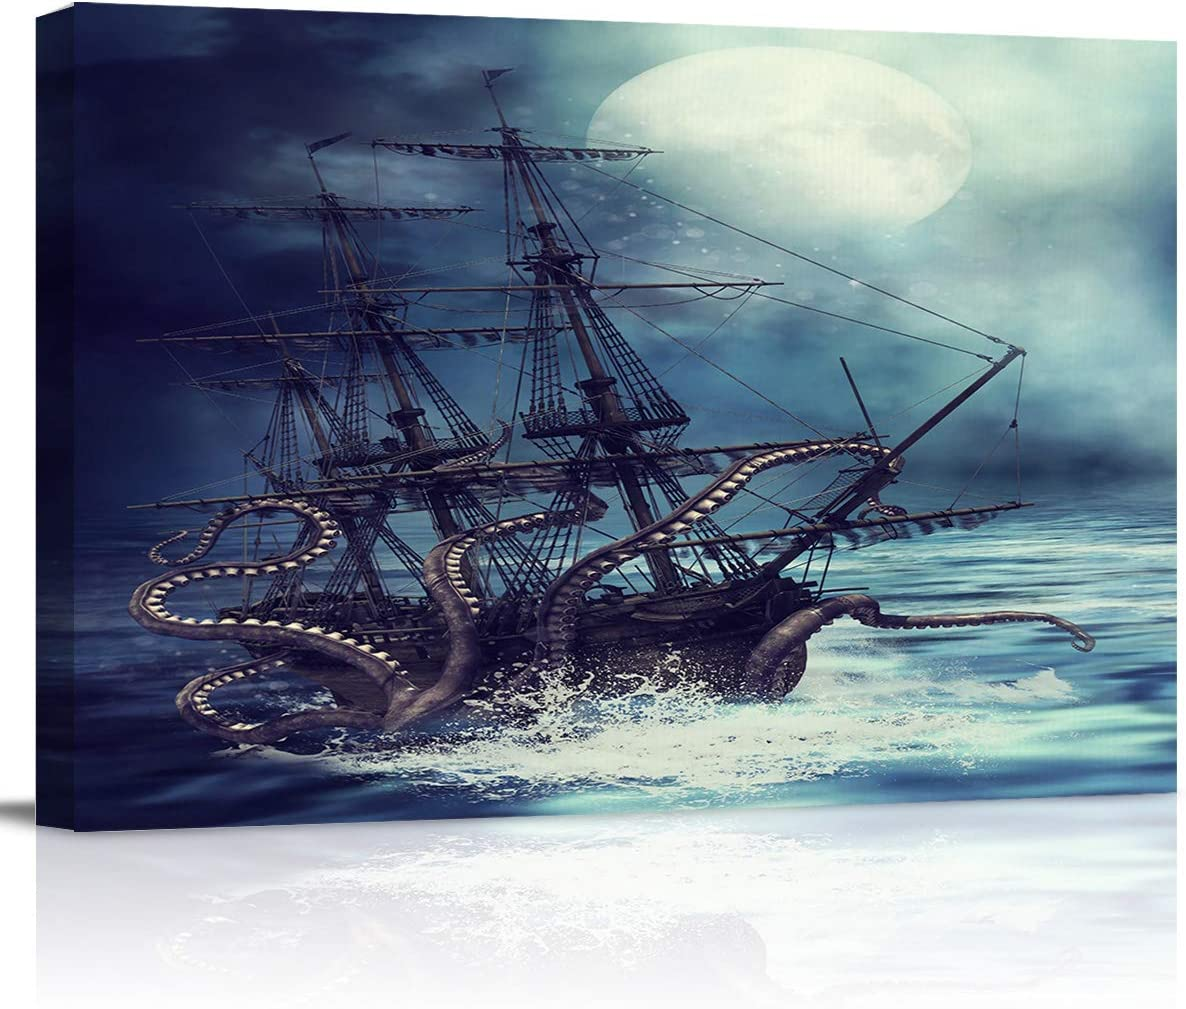 T&H XHome Room Decor for Bedroom Kitchen Bathroom Painting Wall Art Print Poster Moon Night Octopus Sink Ship Canvas Art Home Office Apartment Decor for Men Teens Kids Boys 12x16 Framed